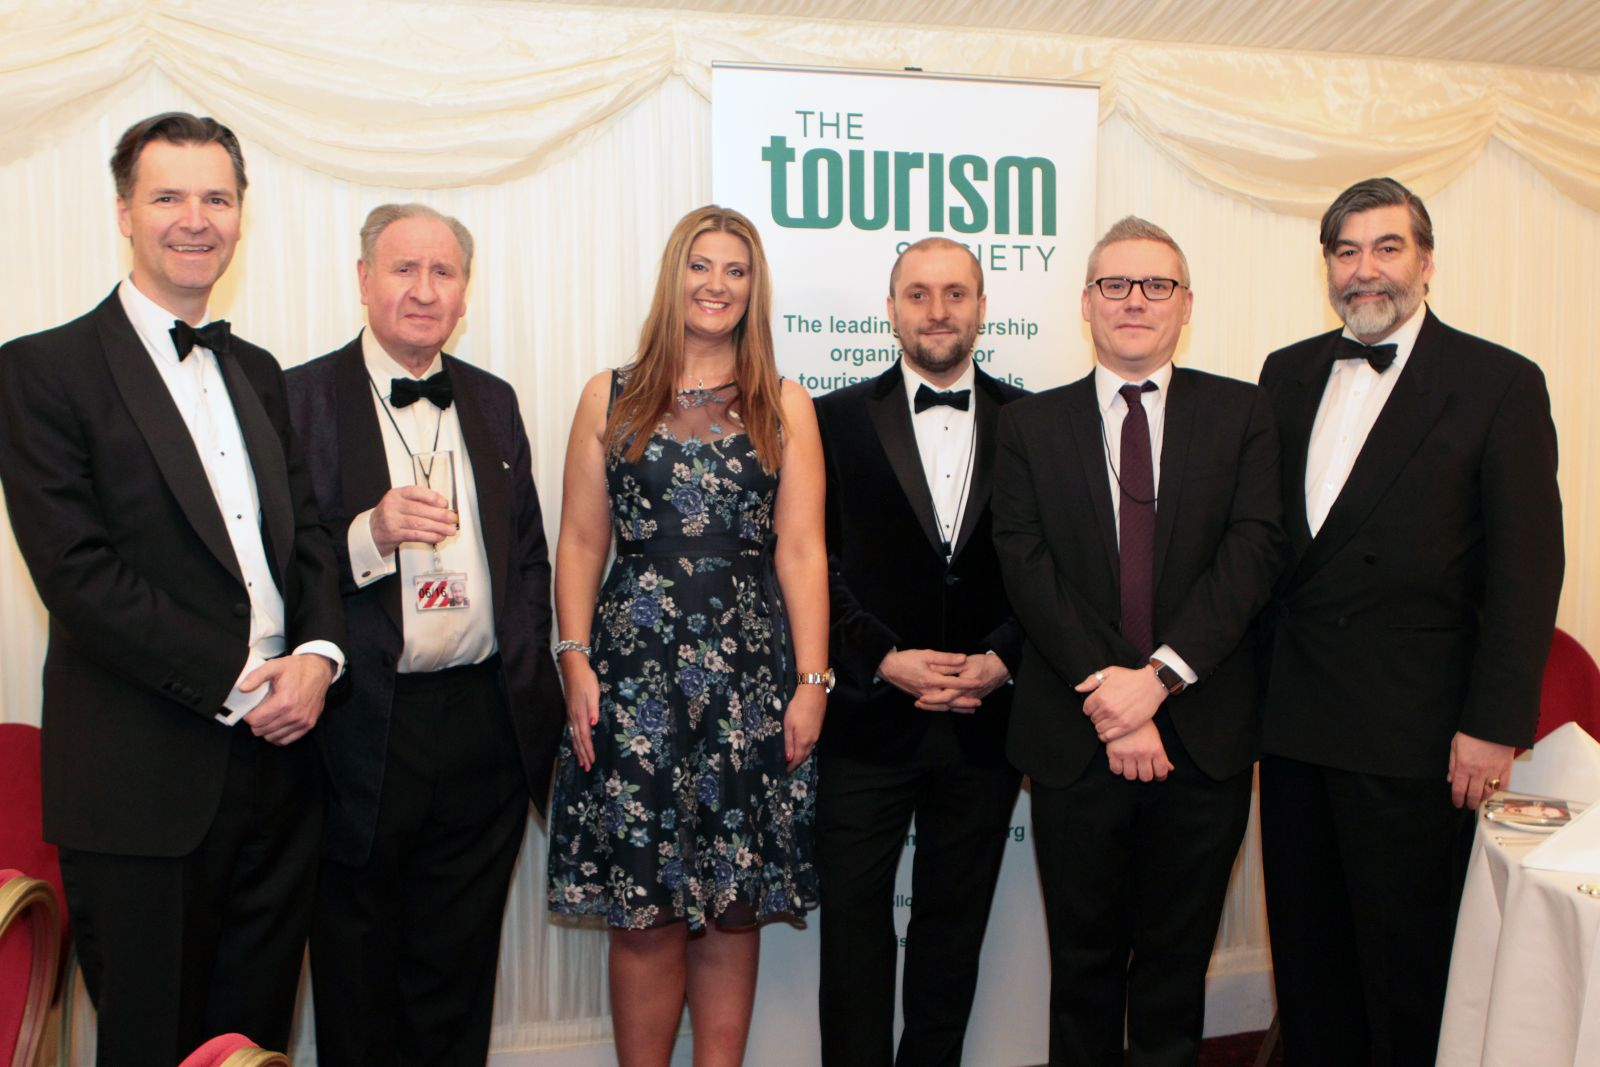 Tourism Society prestigious Annual Dinner at the House of Lords